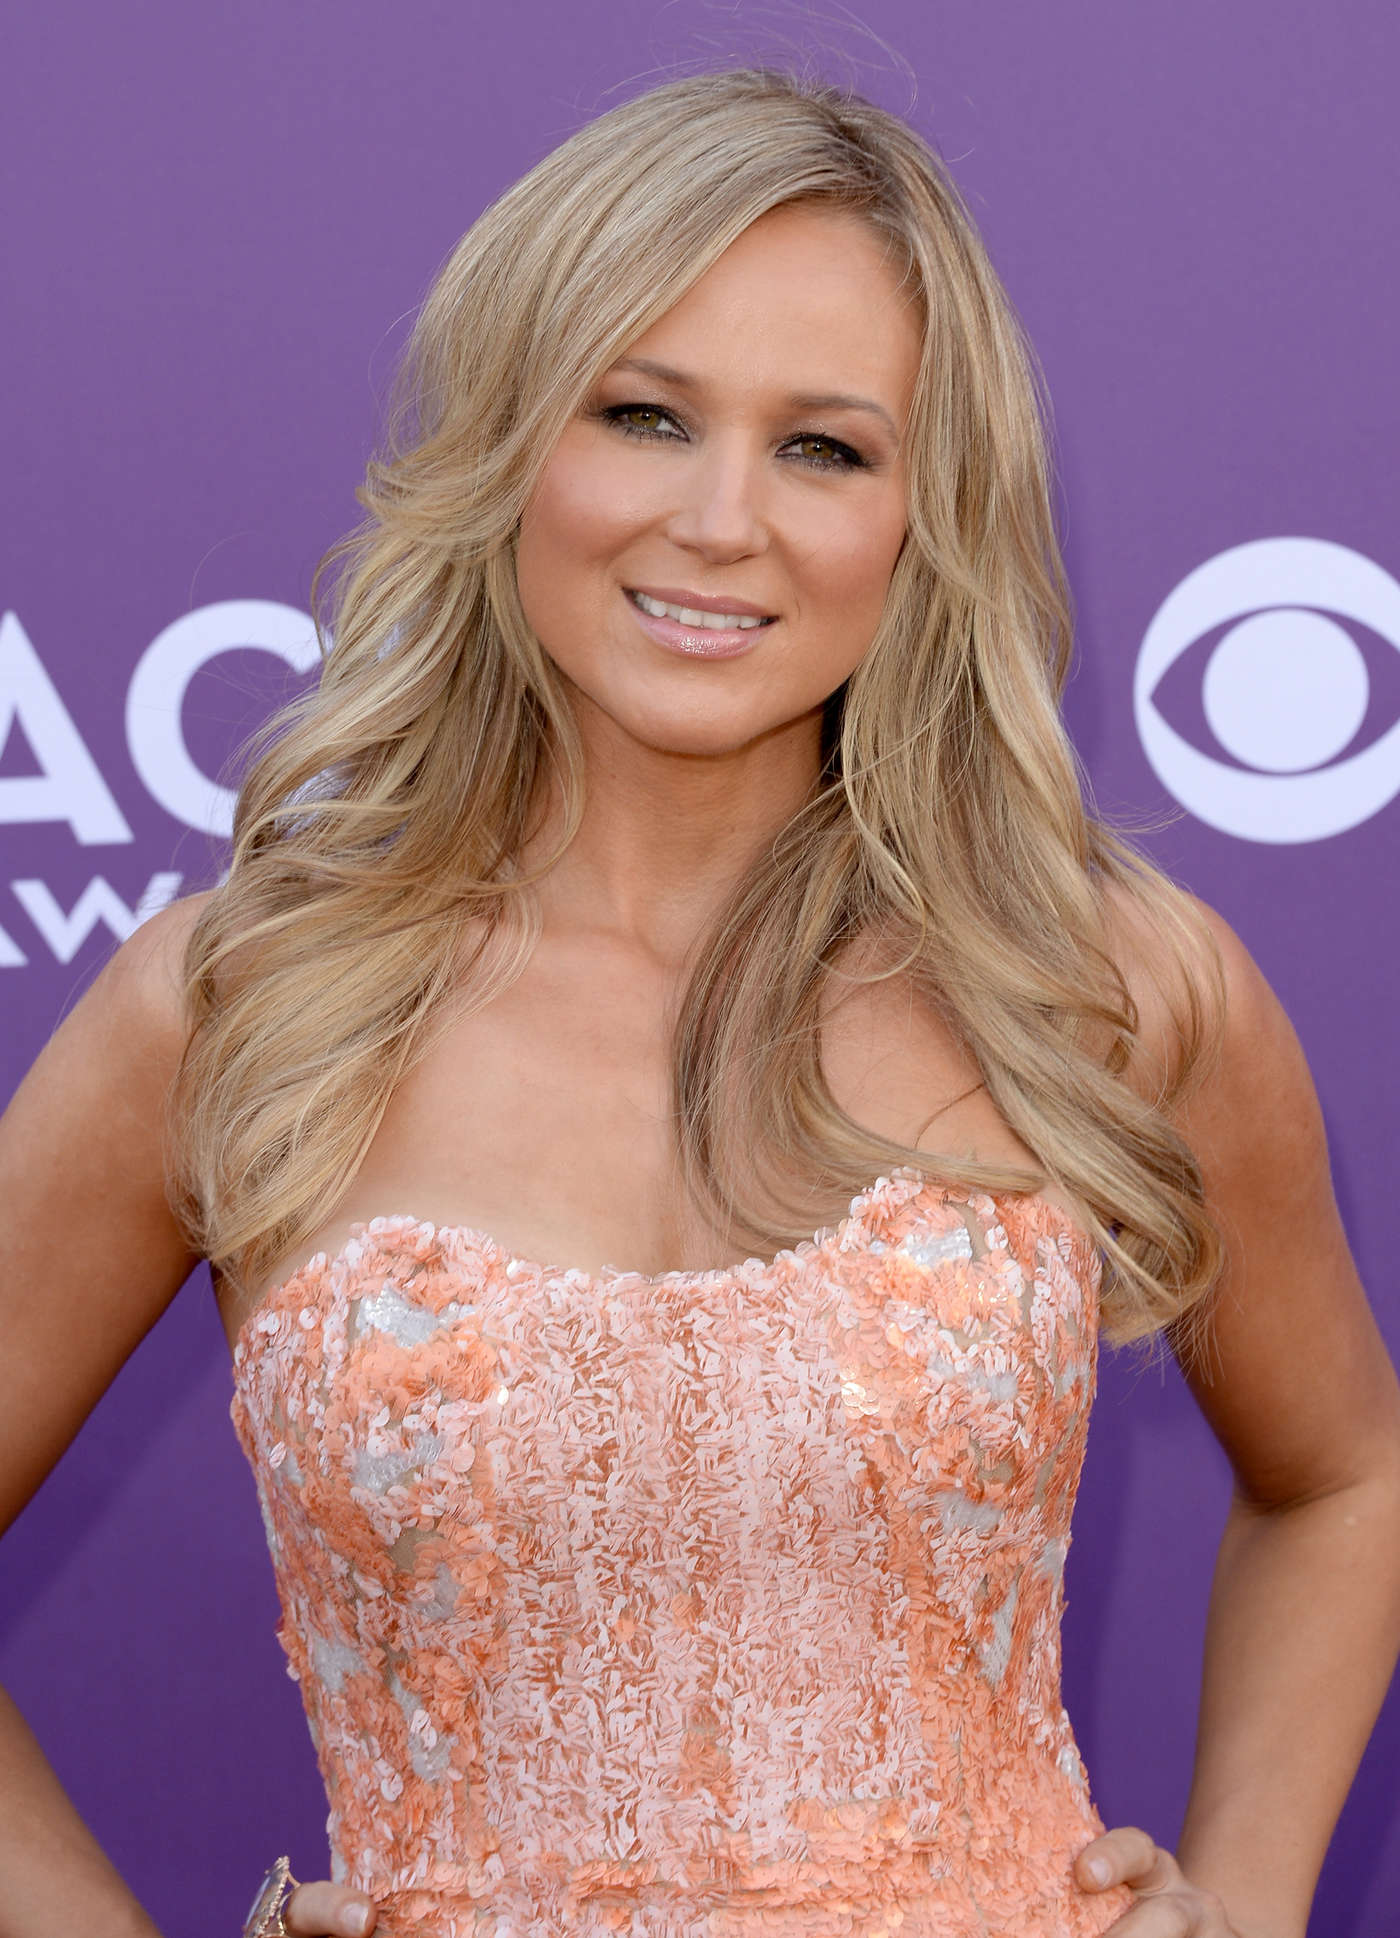 Jewel Kilcher Annual Academy of Country Music Awards in Las Vegas